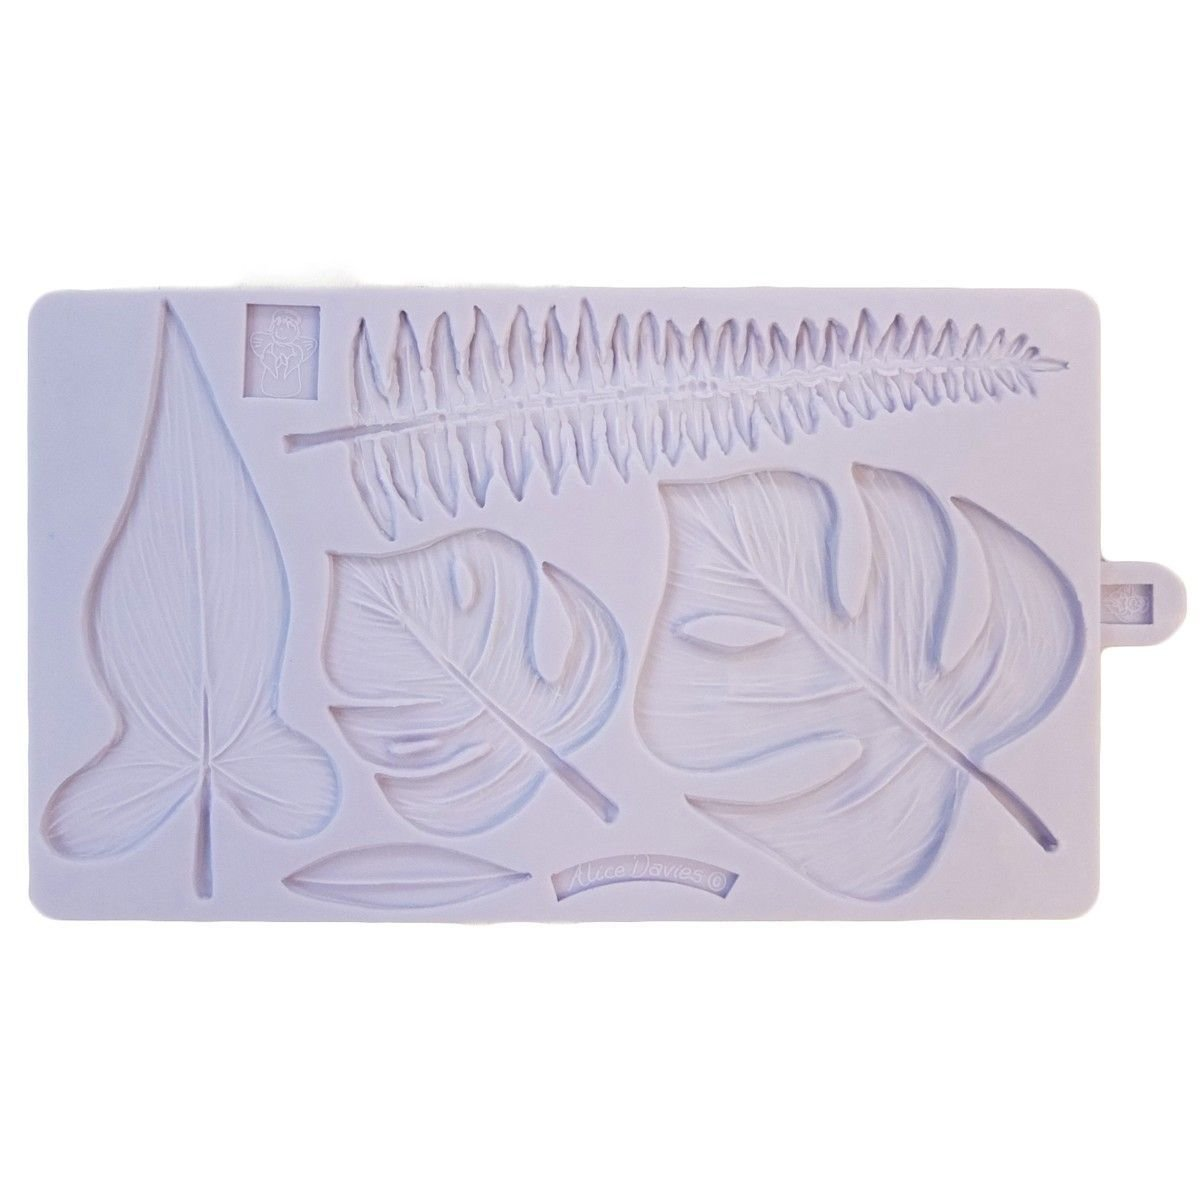 Karen Davies Silicone Mould -TROPICAL LEAVES -Καλούπι Τροπικά Φύλλα